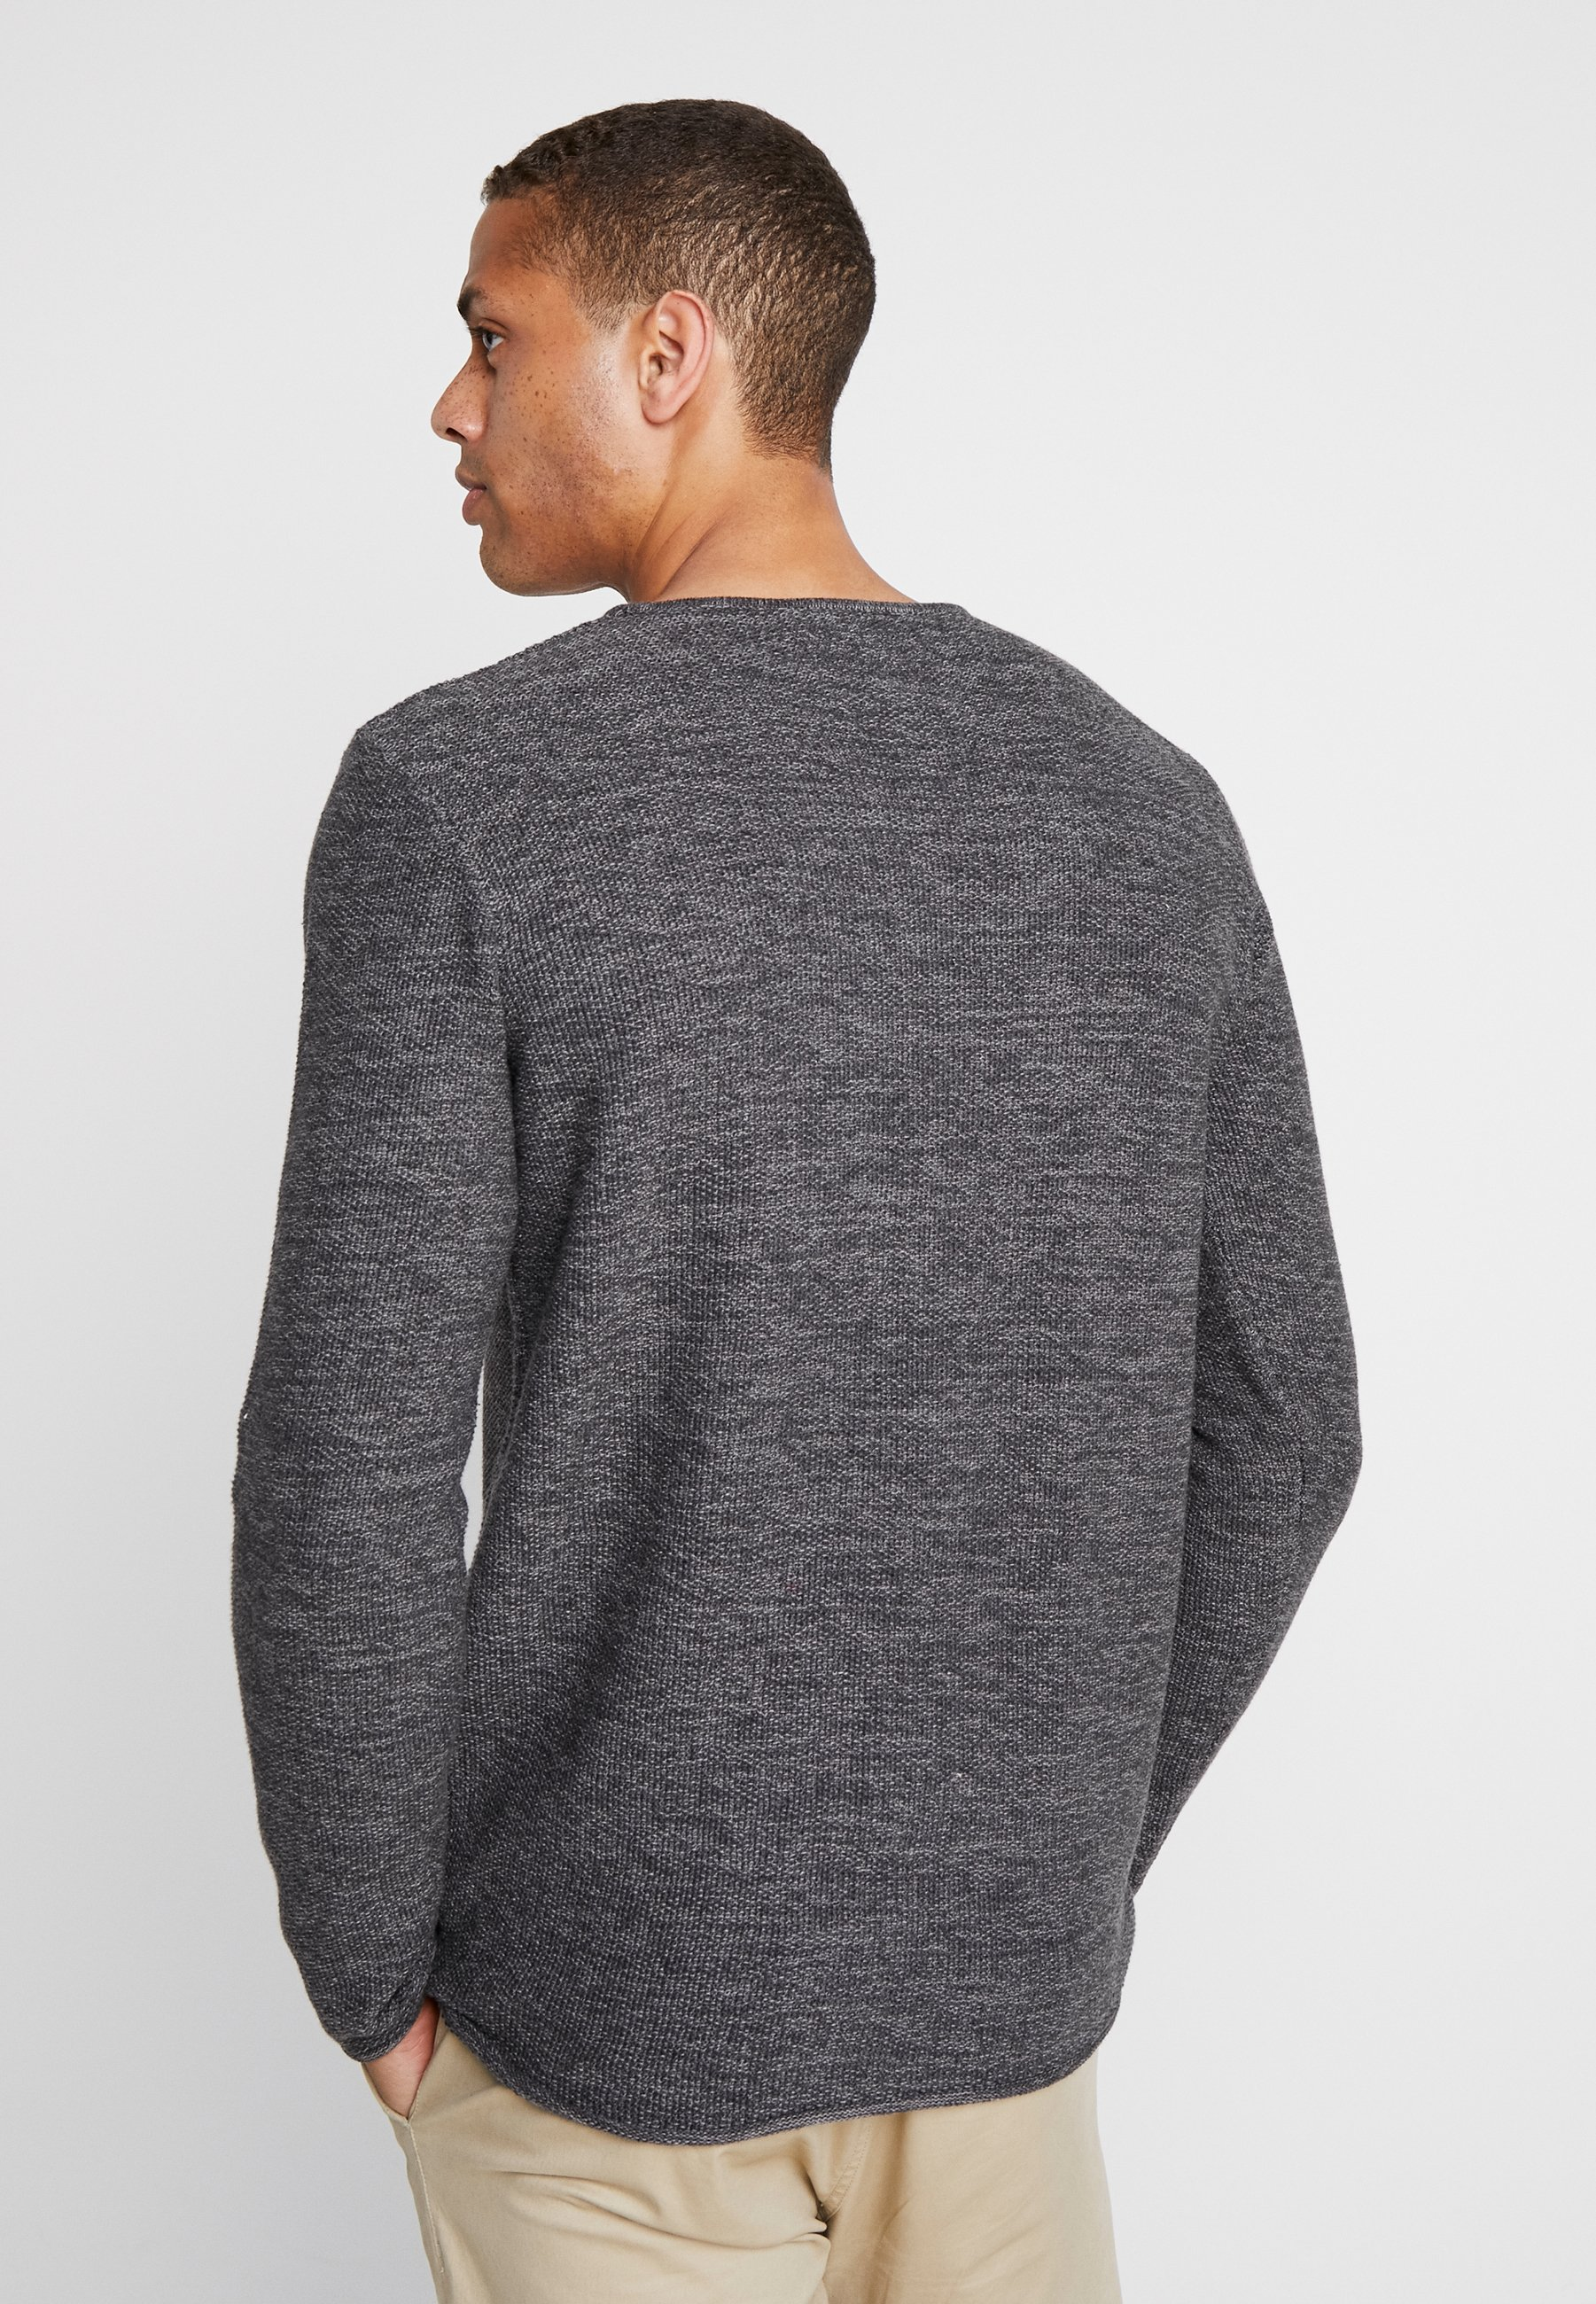 Charcoal KristianPullover Jeans Indicode Indicode Jeans Jl13TKFc